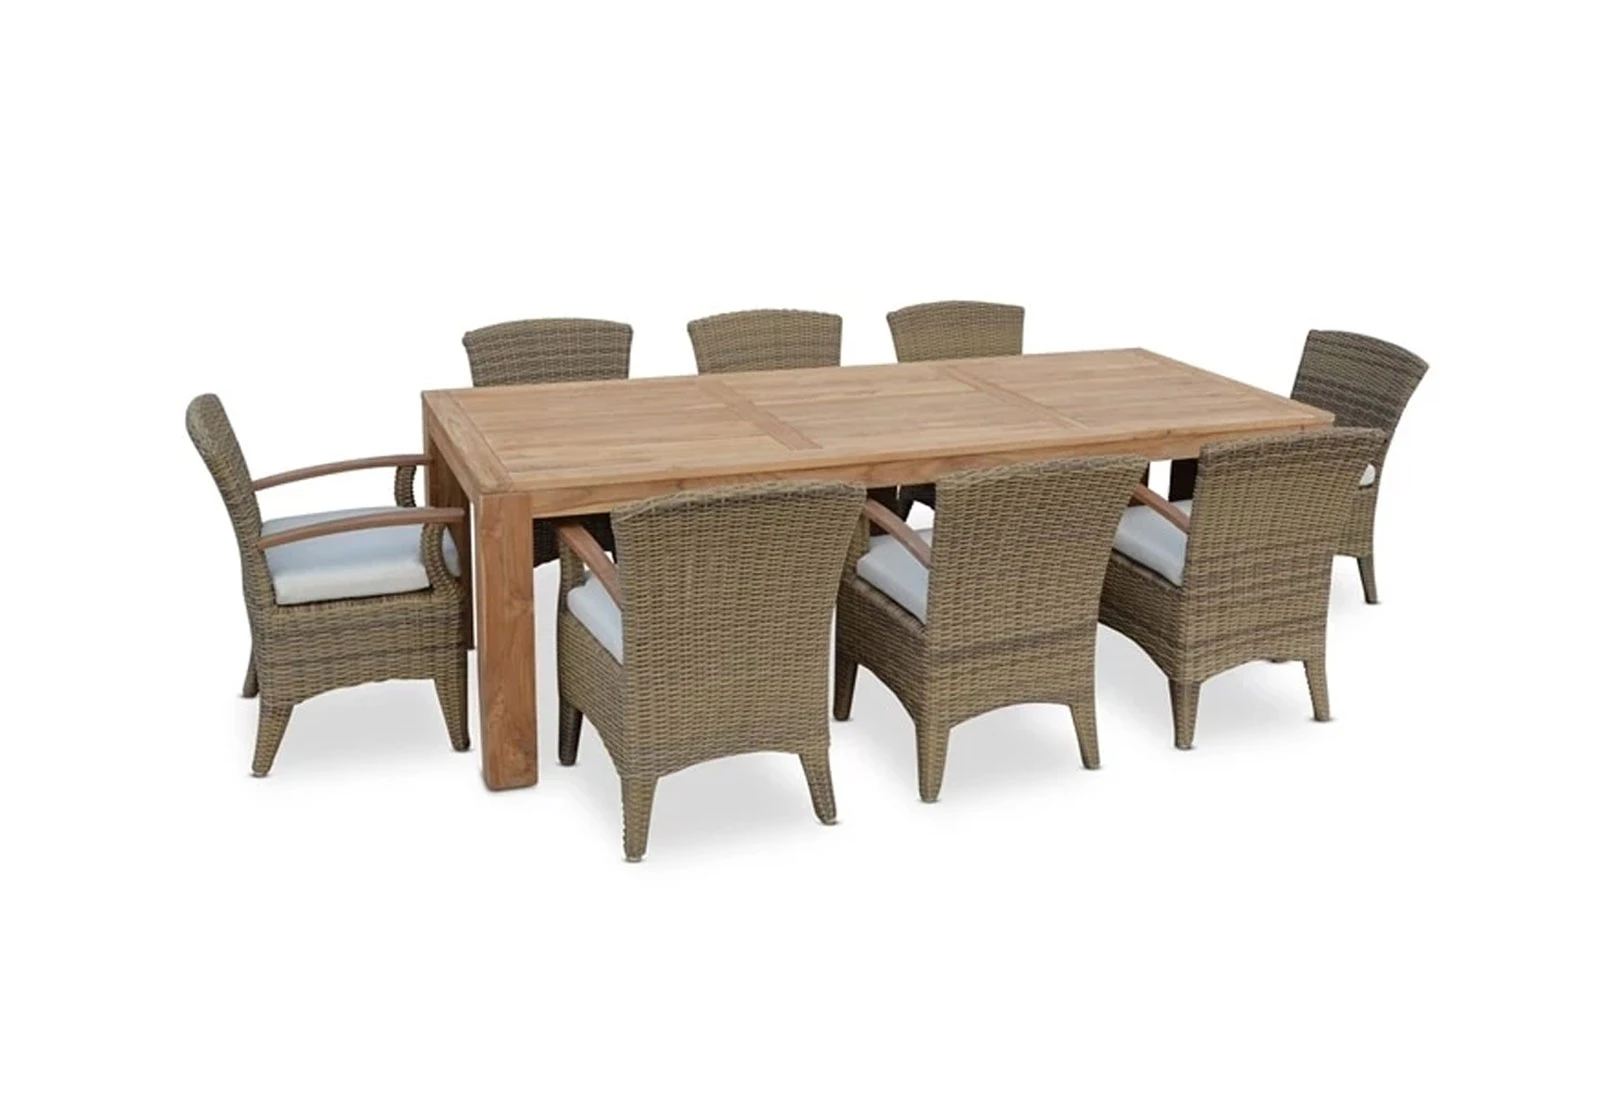 Teak Top Outdoor Dining Settings